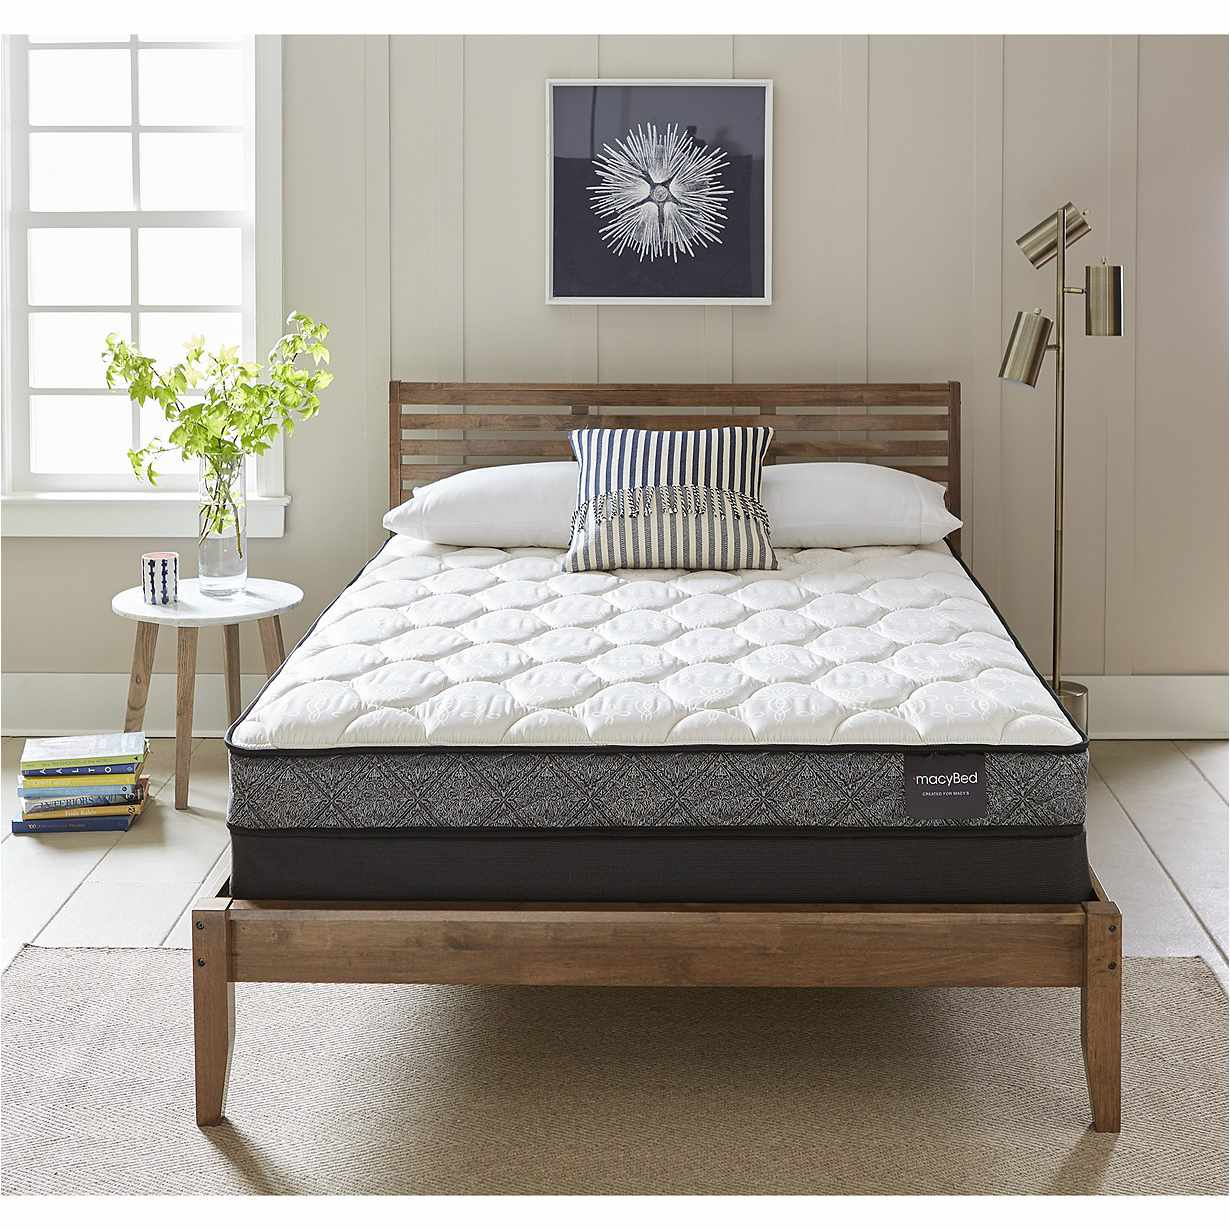 the 10 best places to shop for a mattress in 2019. Black Bedroom Furniture Sets. Home Design Ideas